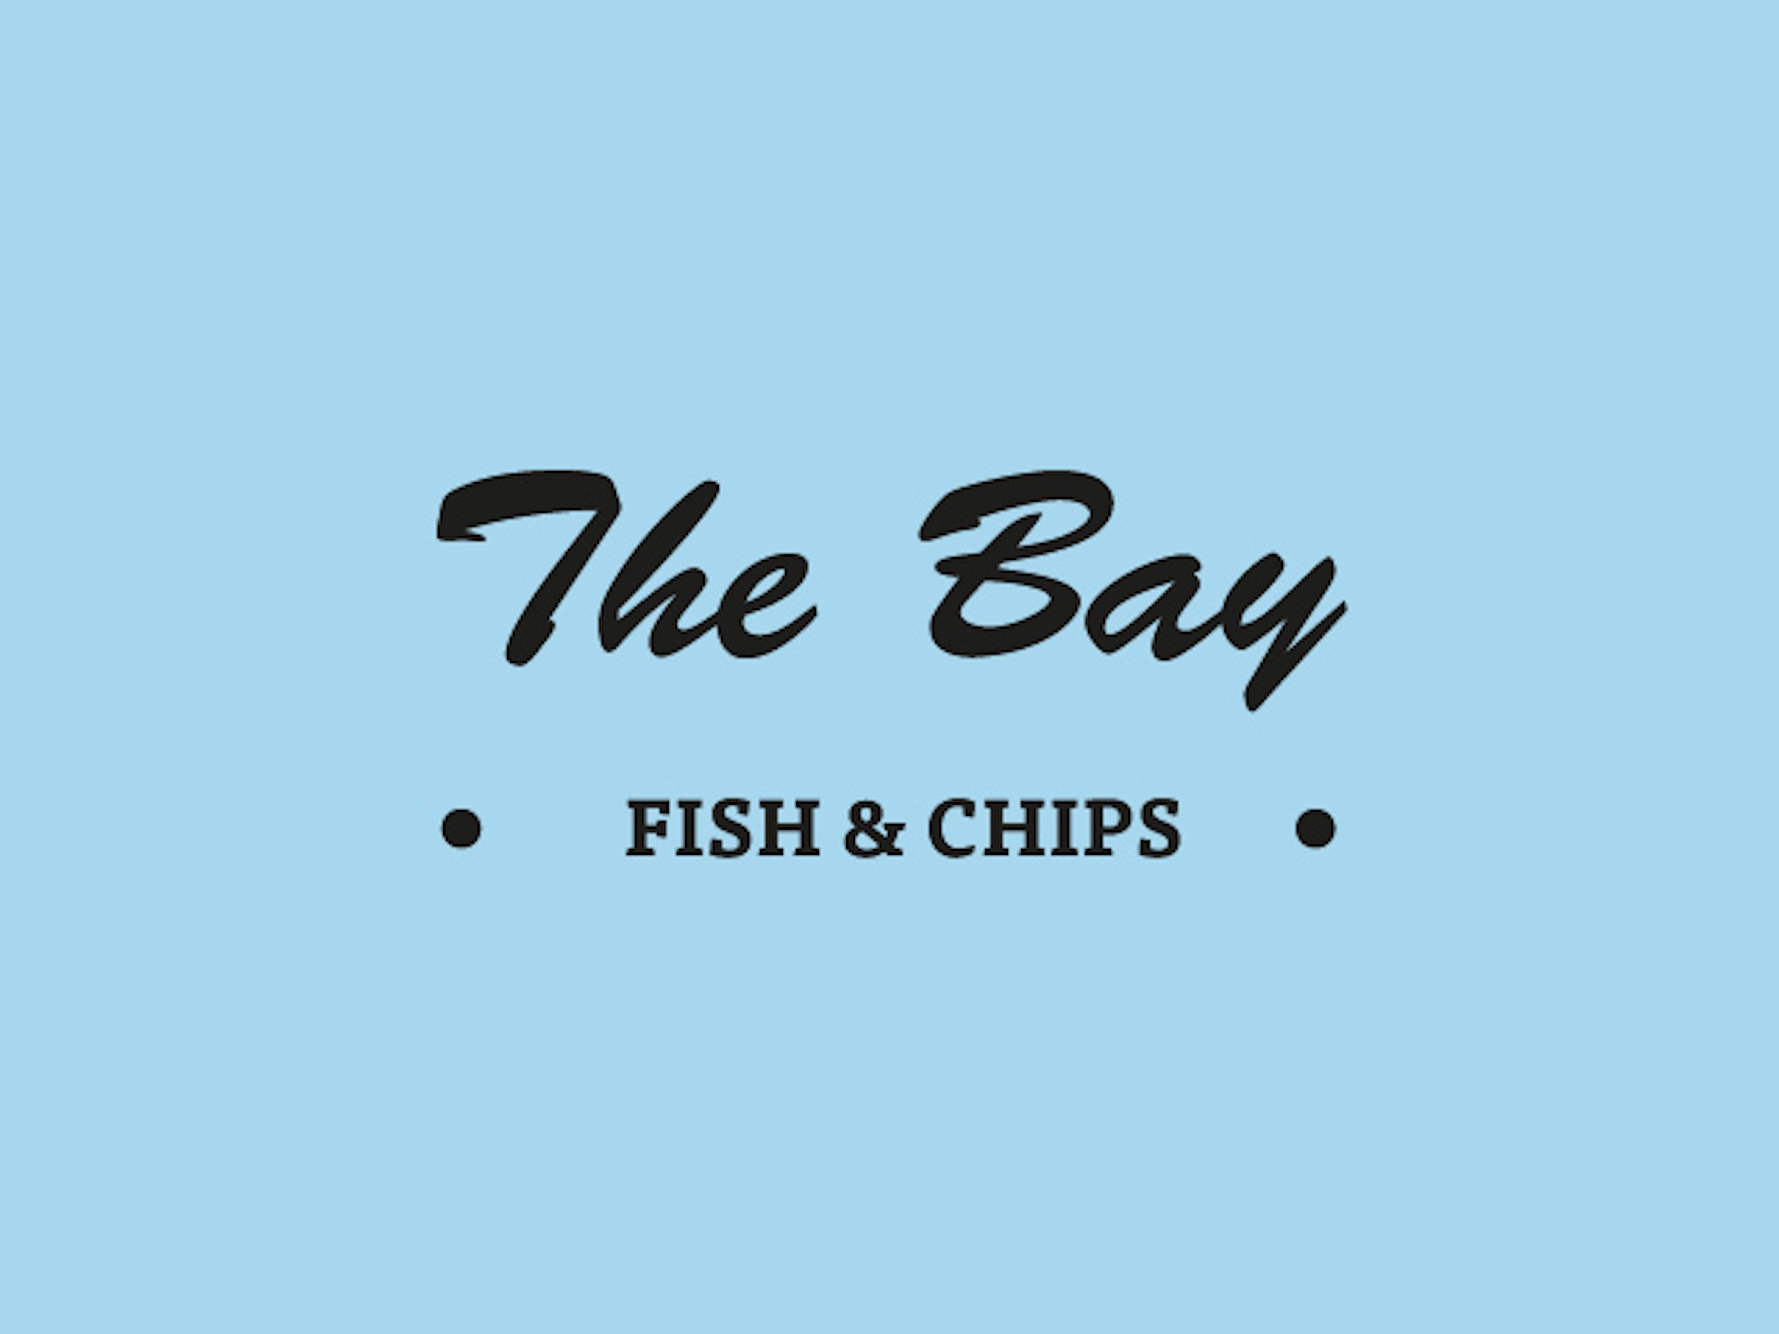 The Bay Fish & Chips